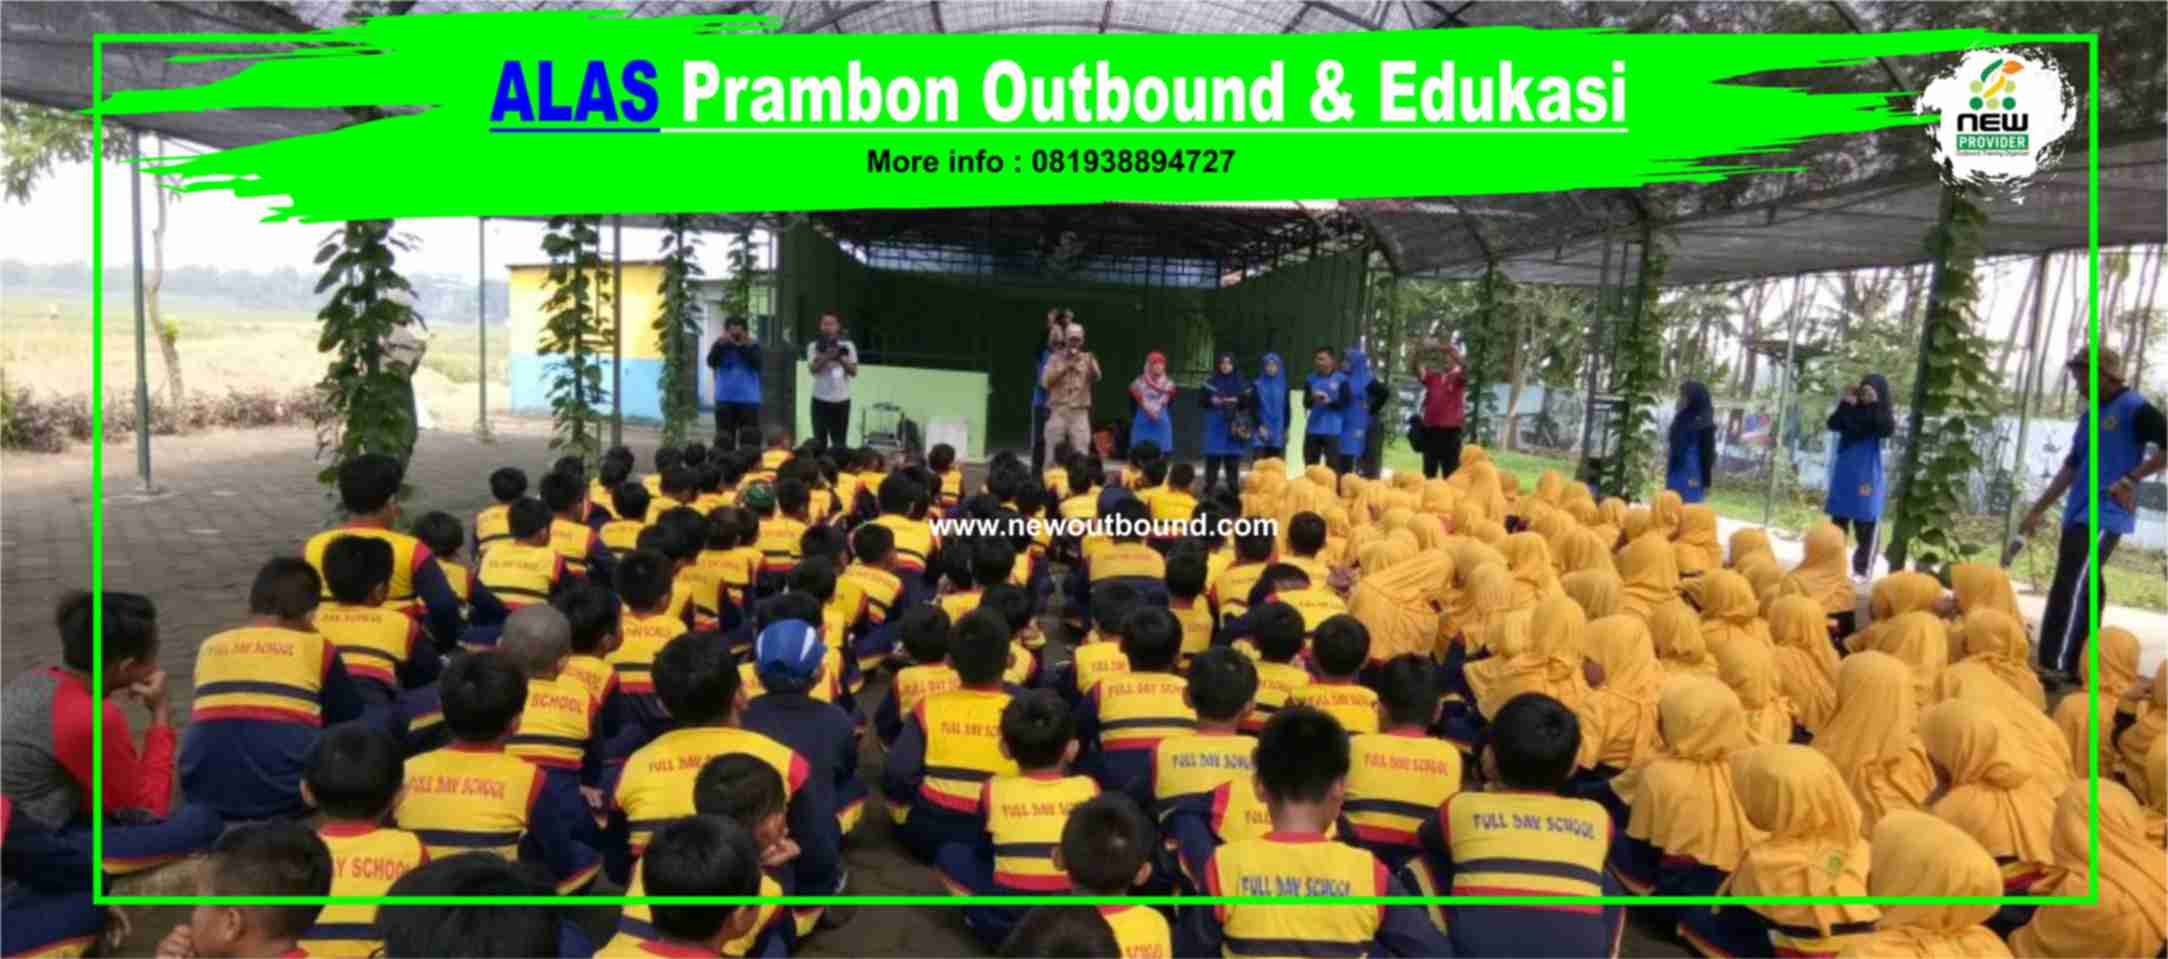 Alas Prambon outbound